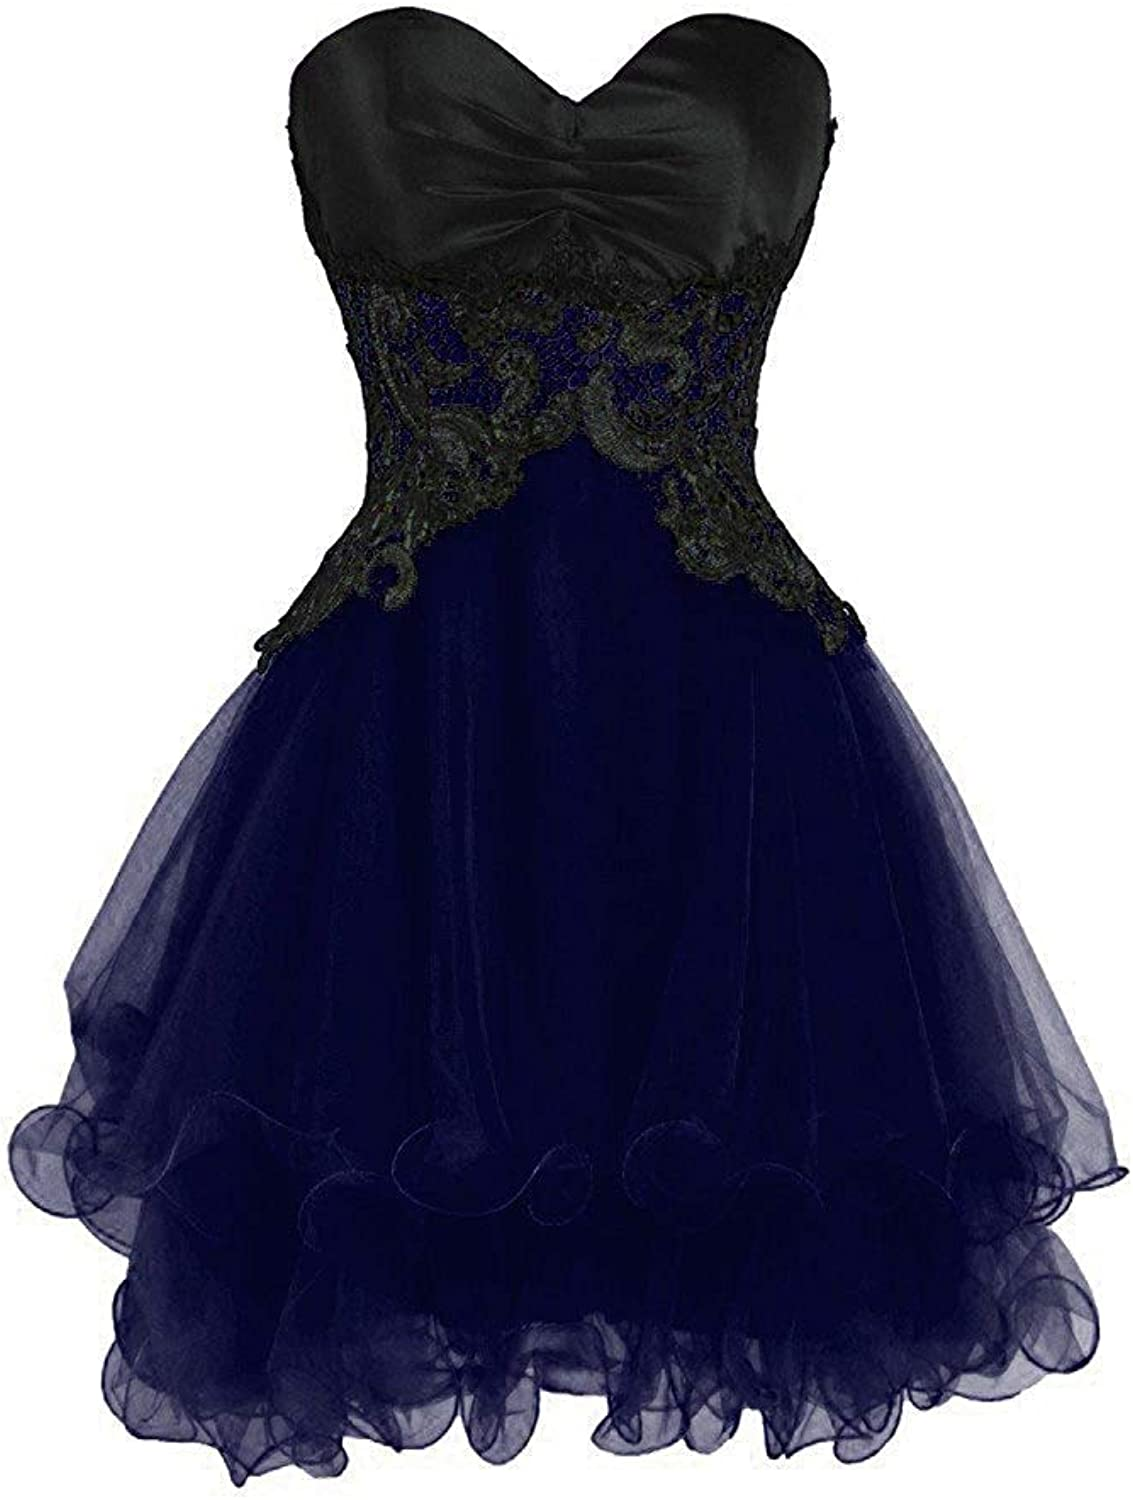 Sweetheart Lace Homecoming Cocktail Dresses Short Bridesmaid Dress Appliques Prom Gowns